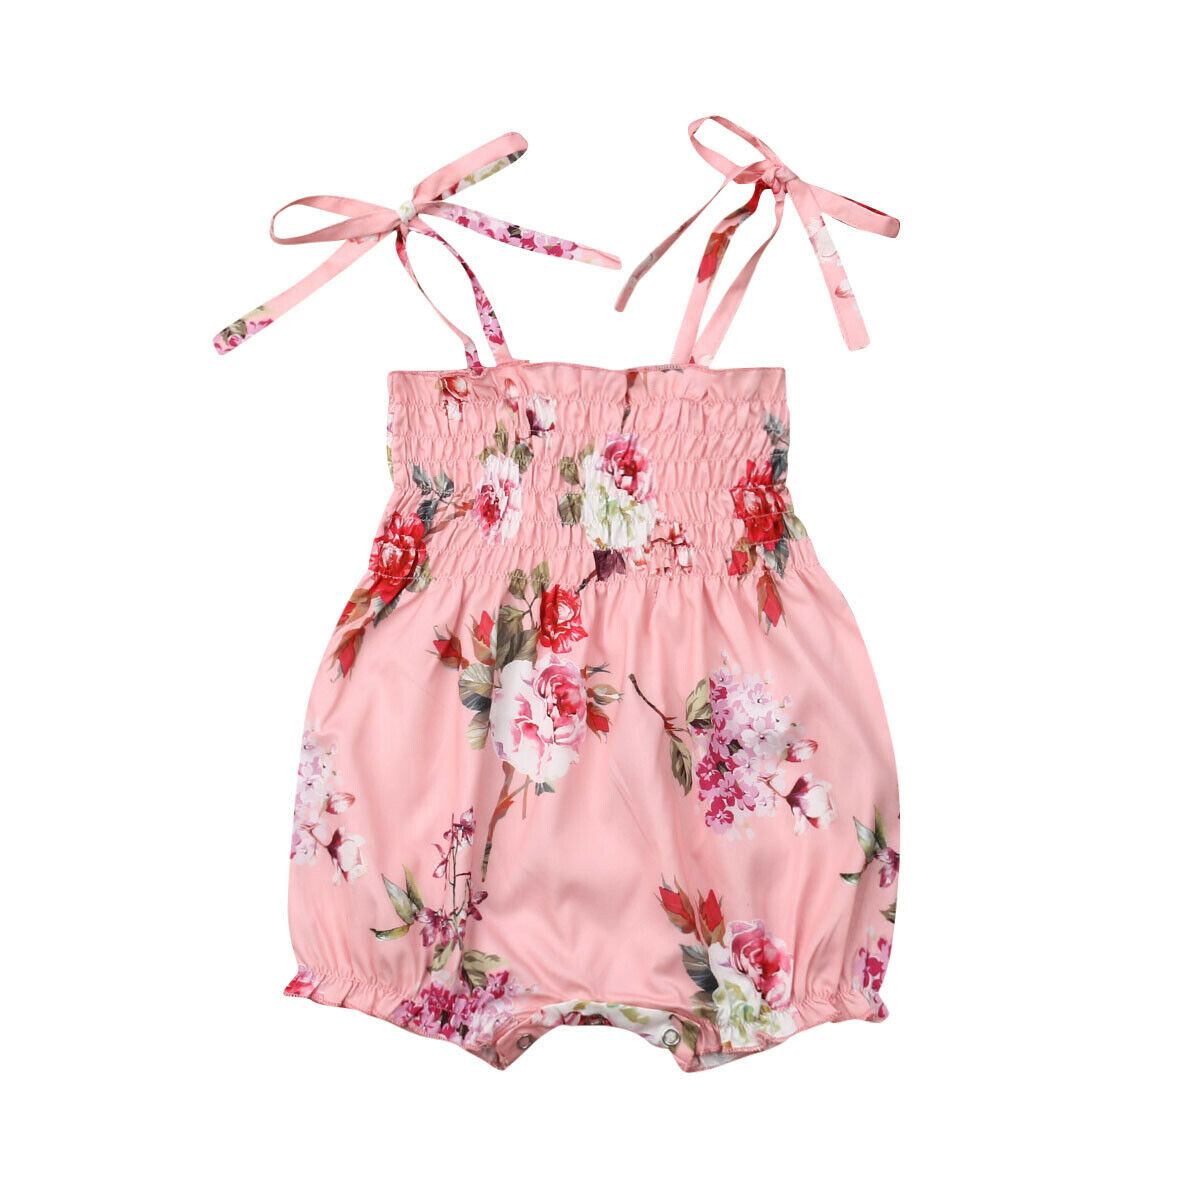 Fower Baby Girls Clothes Newborn Rompers Toddler Infant Girls Jumpsuit Playsuit Sleeveless Summer Costumes For Girls